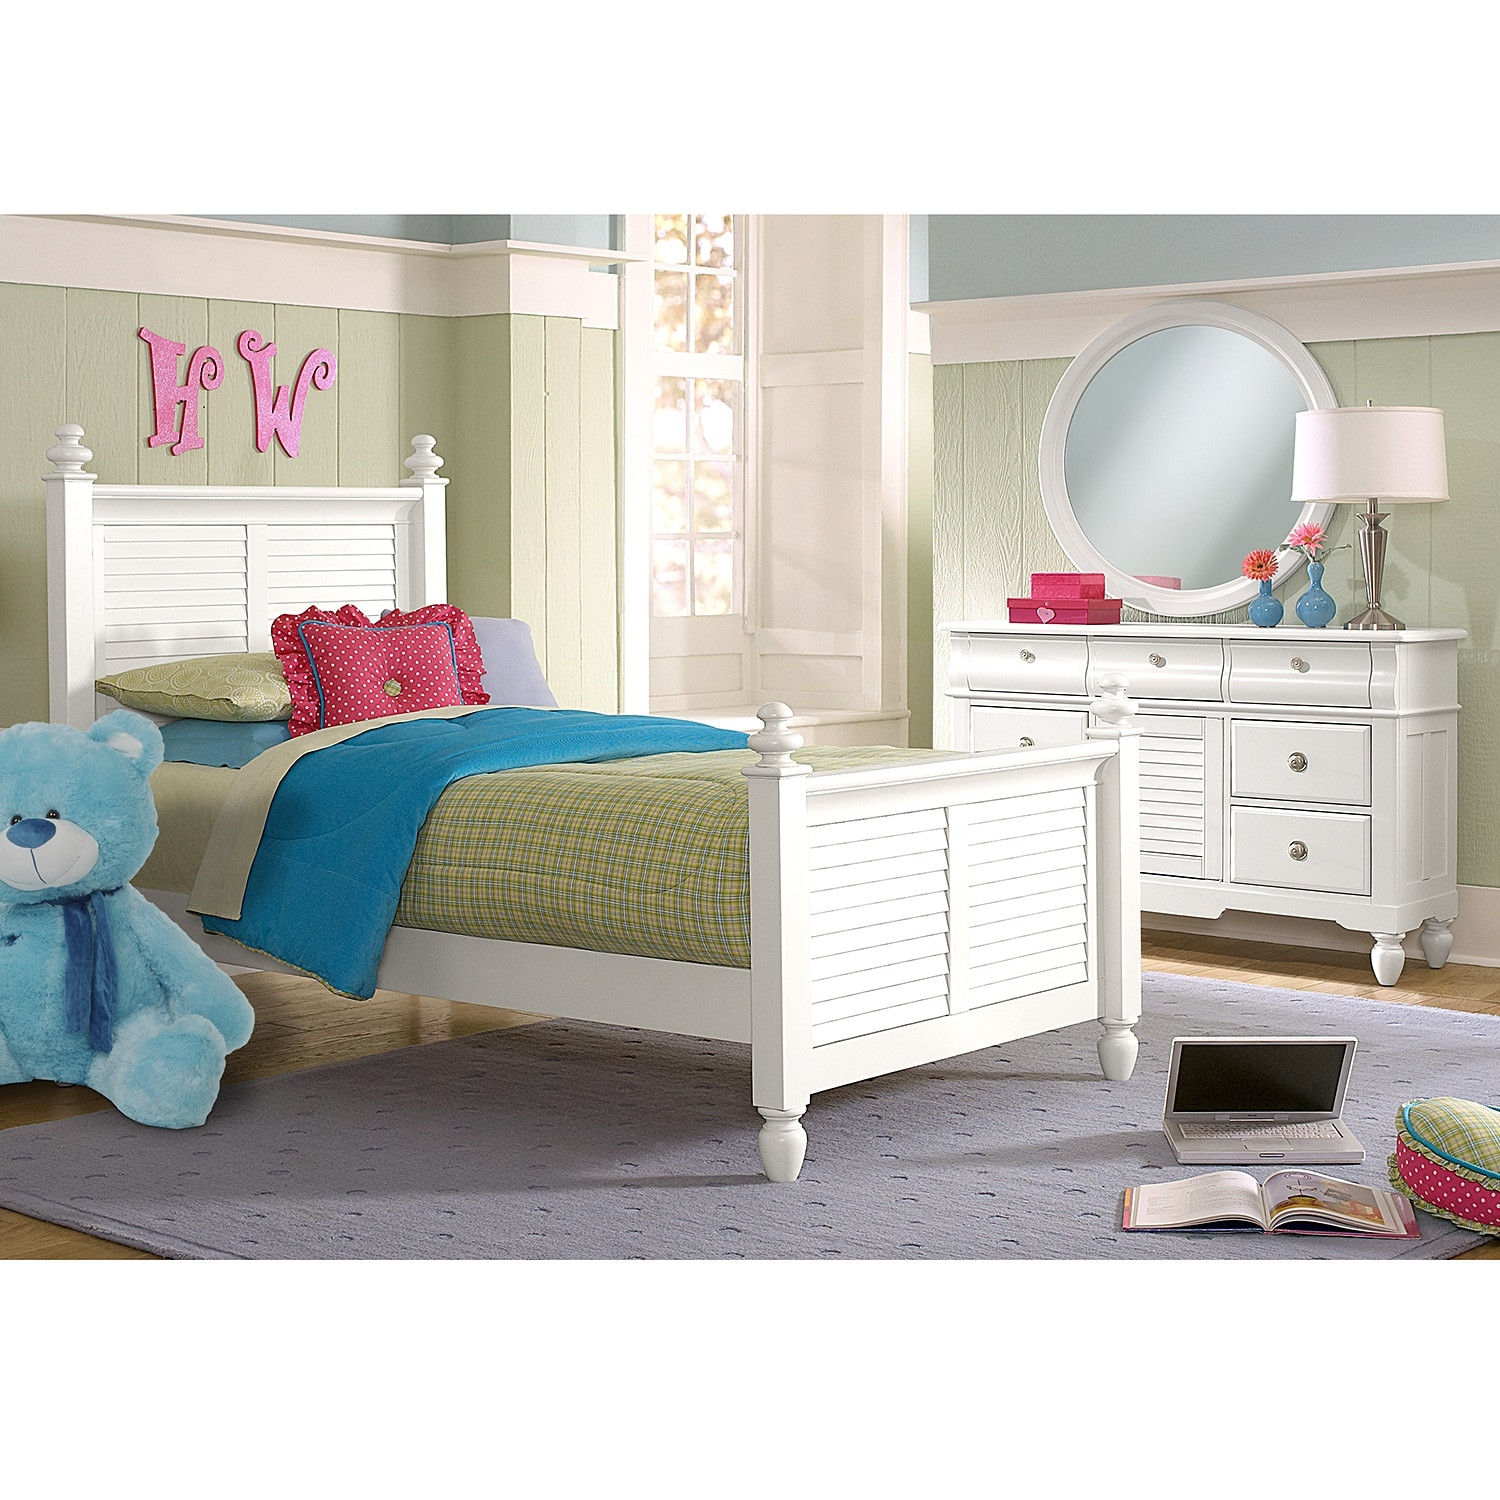 Best ideas about Full Bedroom Set . Save or Pin Seaside 6 Piece Full Bedroom Set with Trundle White Now.